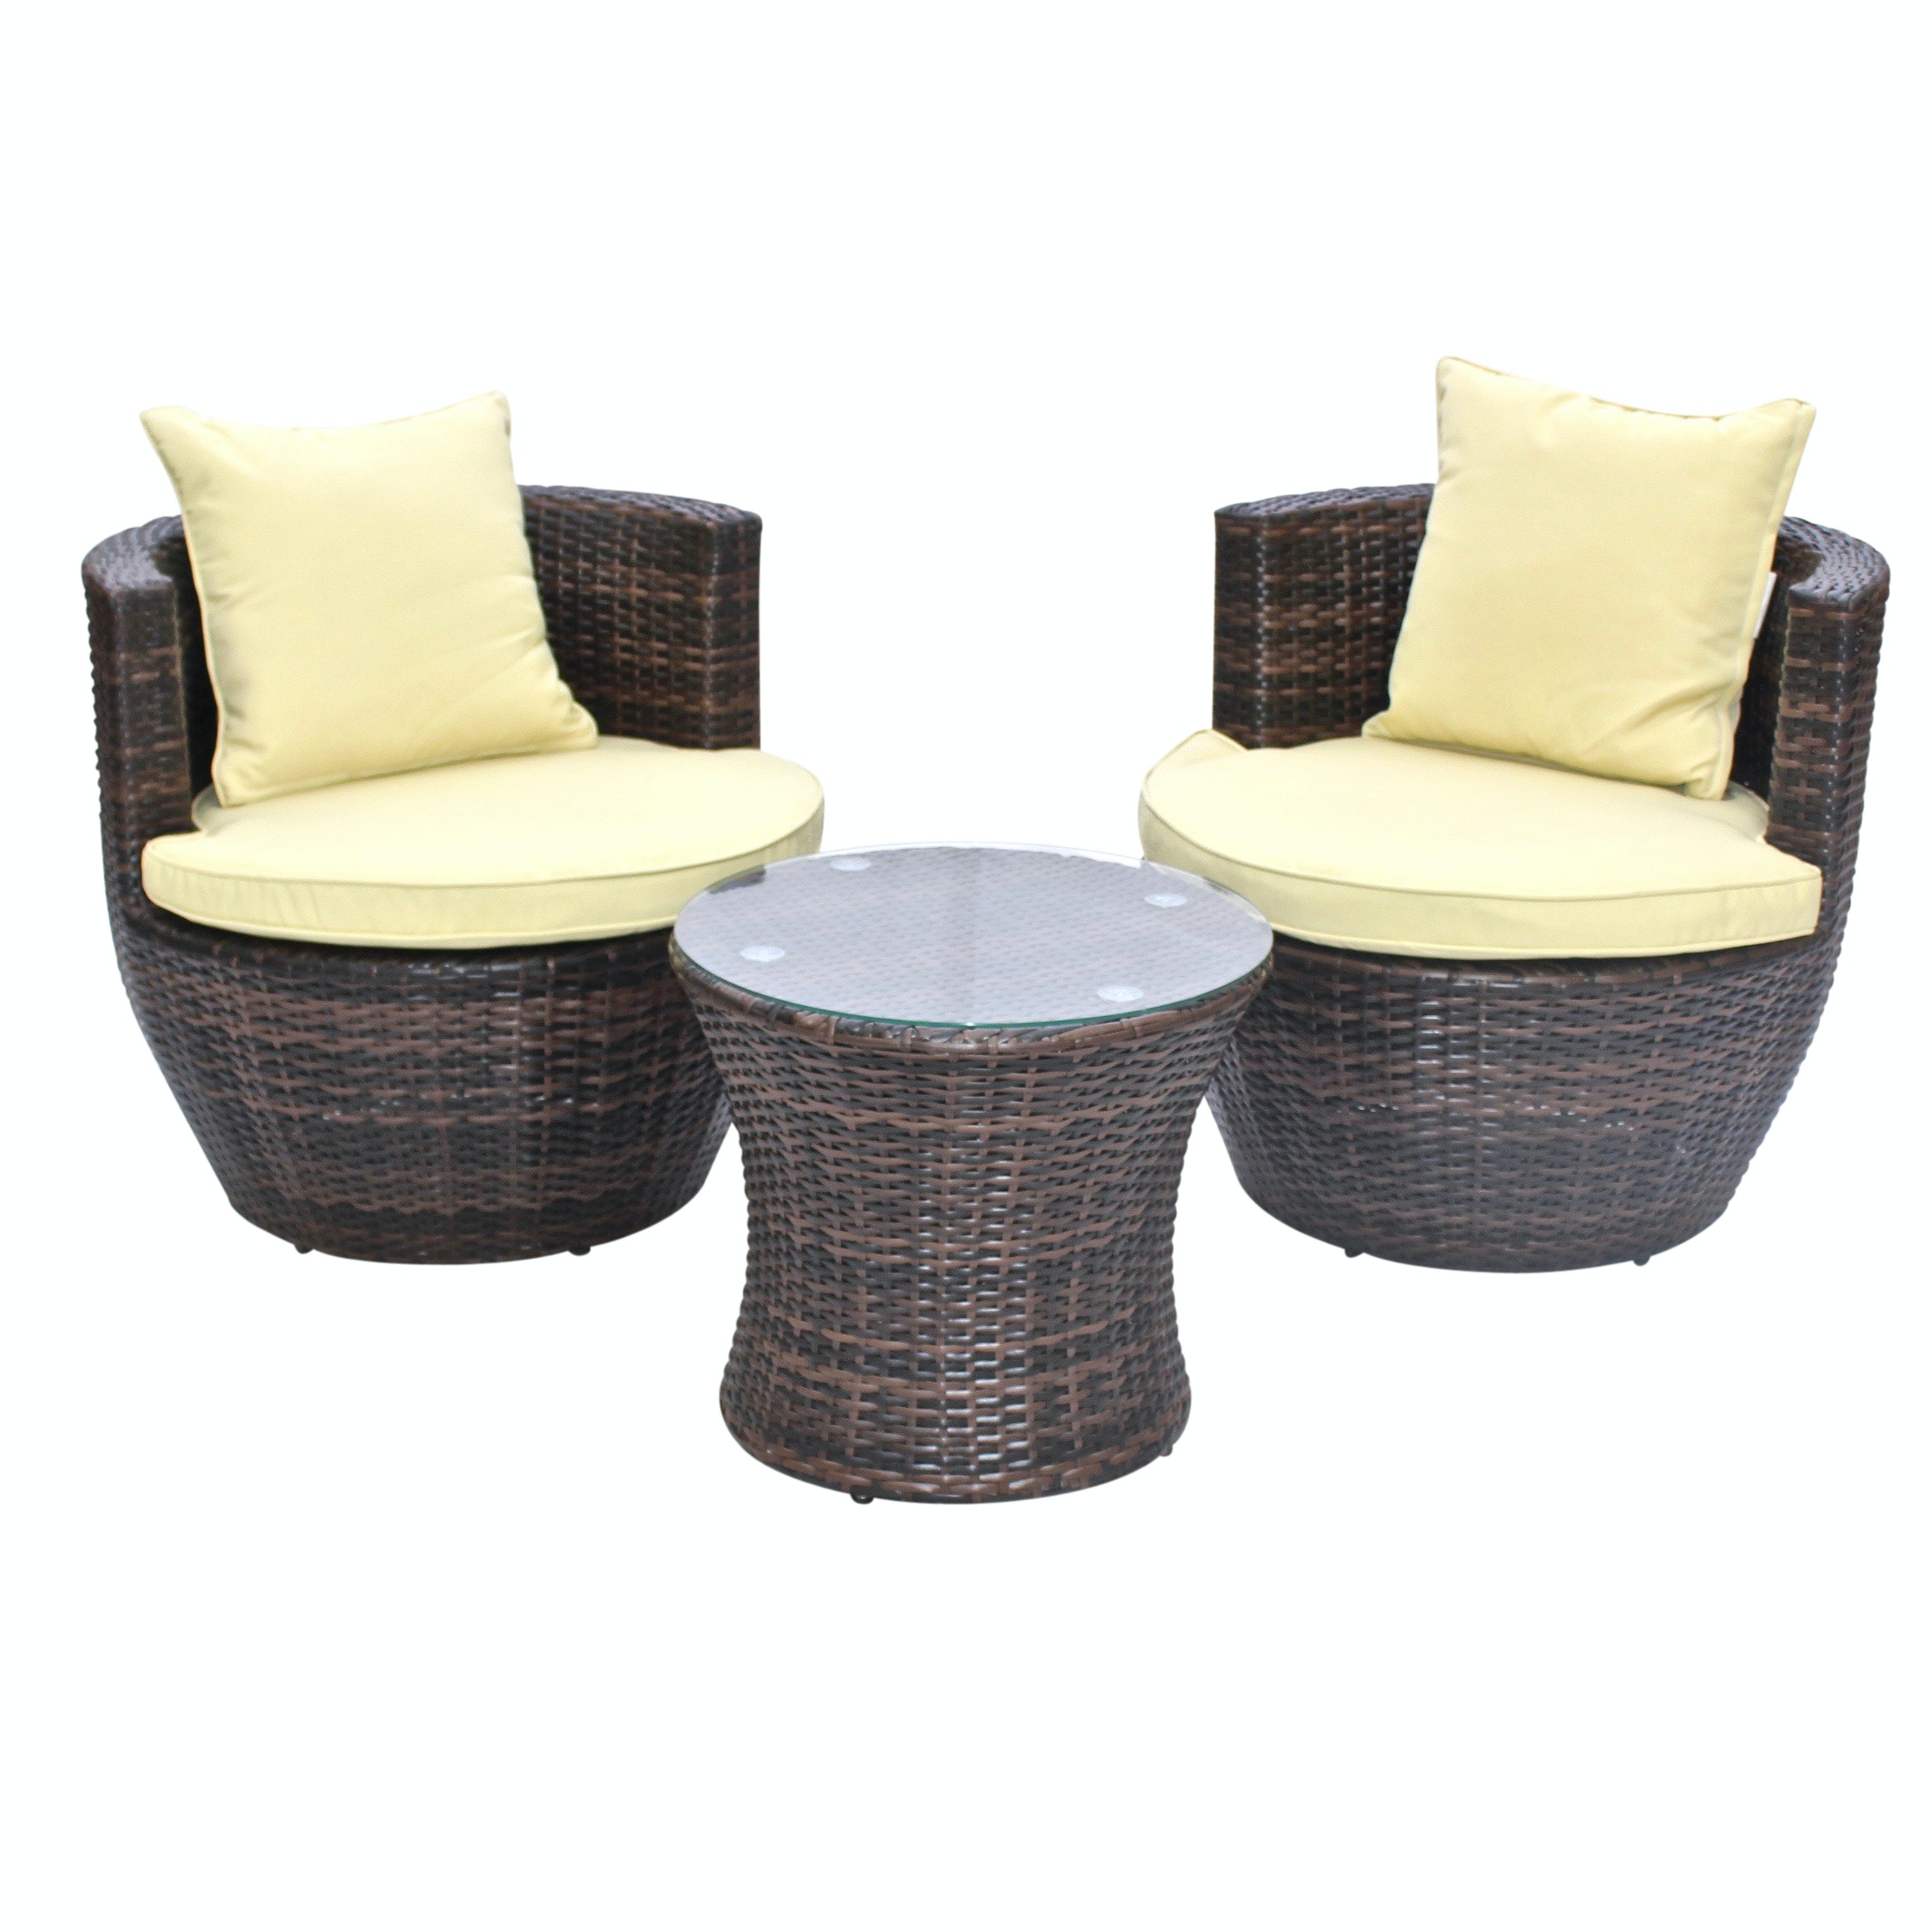 BestSign International Outdoor Rattan Chairs and Side Table